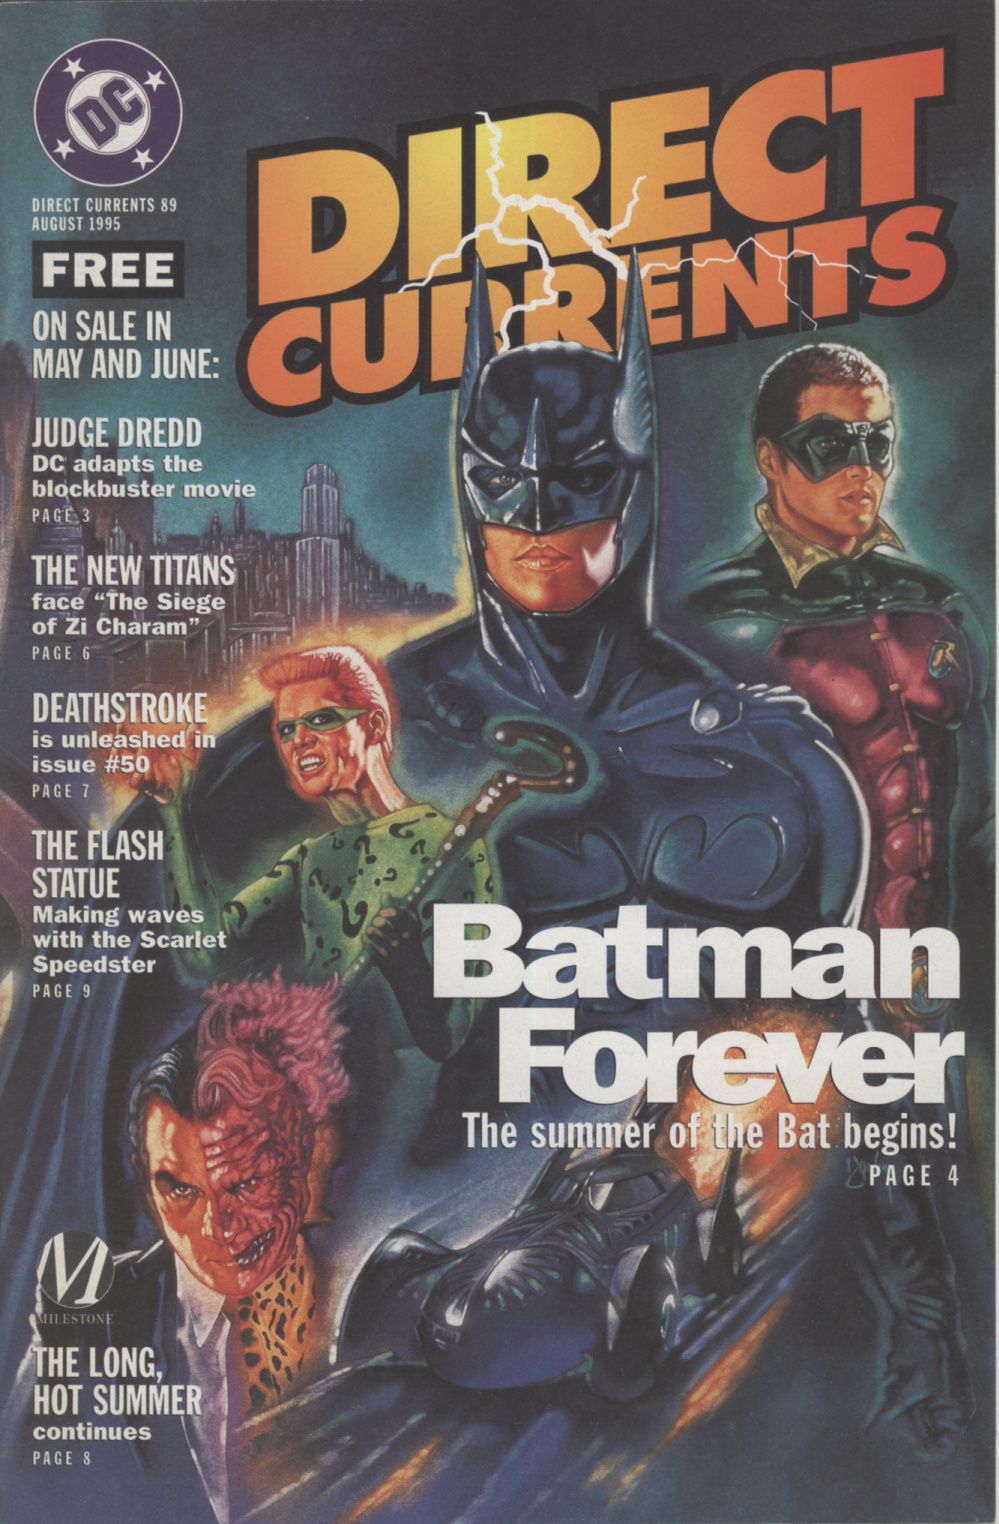 Time Capsule: DC Direct Currents 89 August 1995